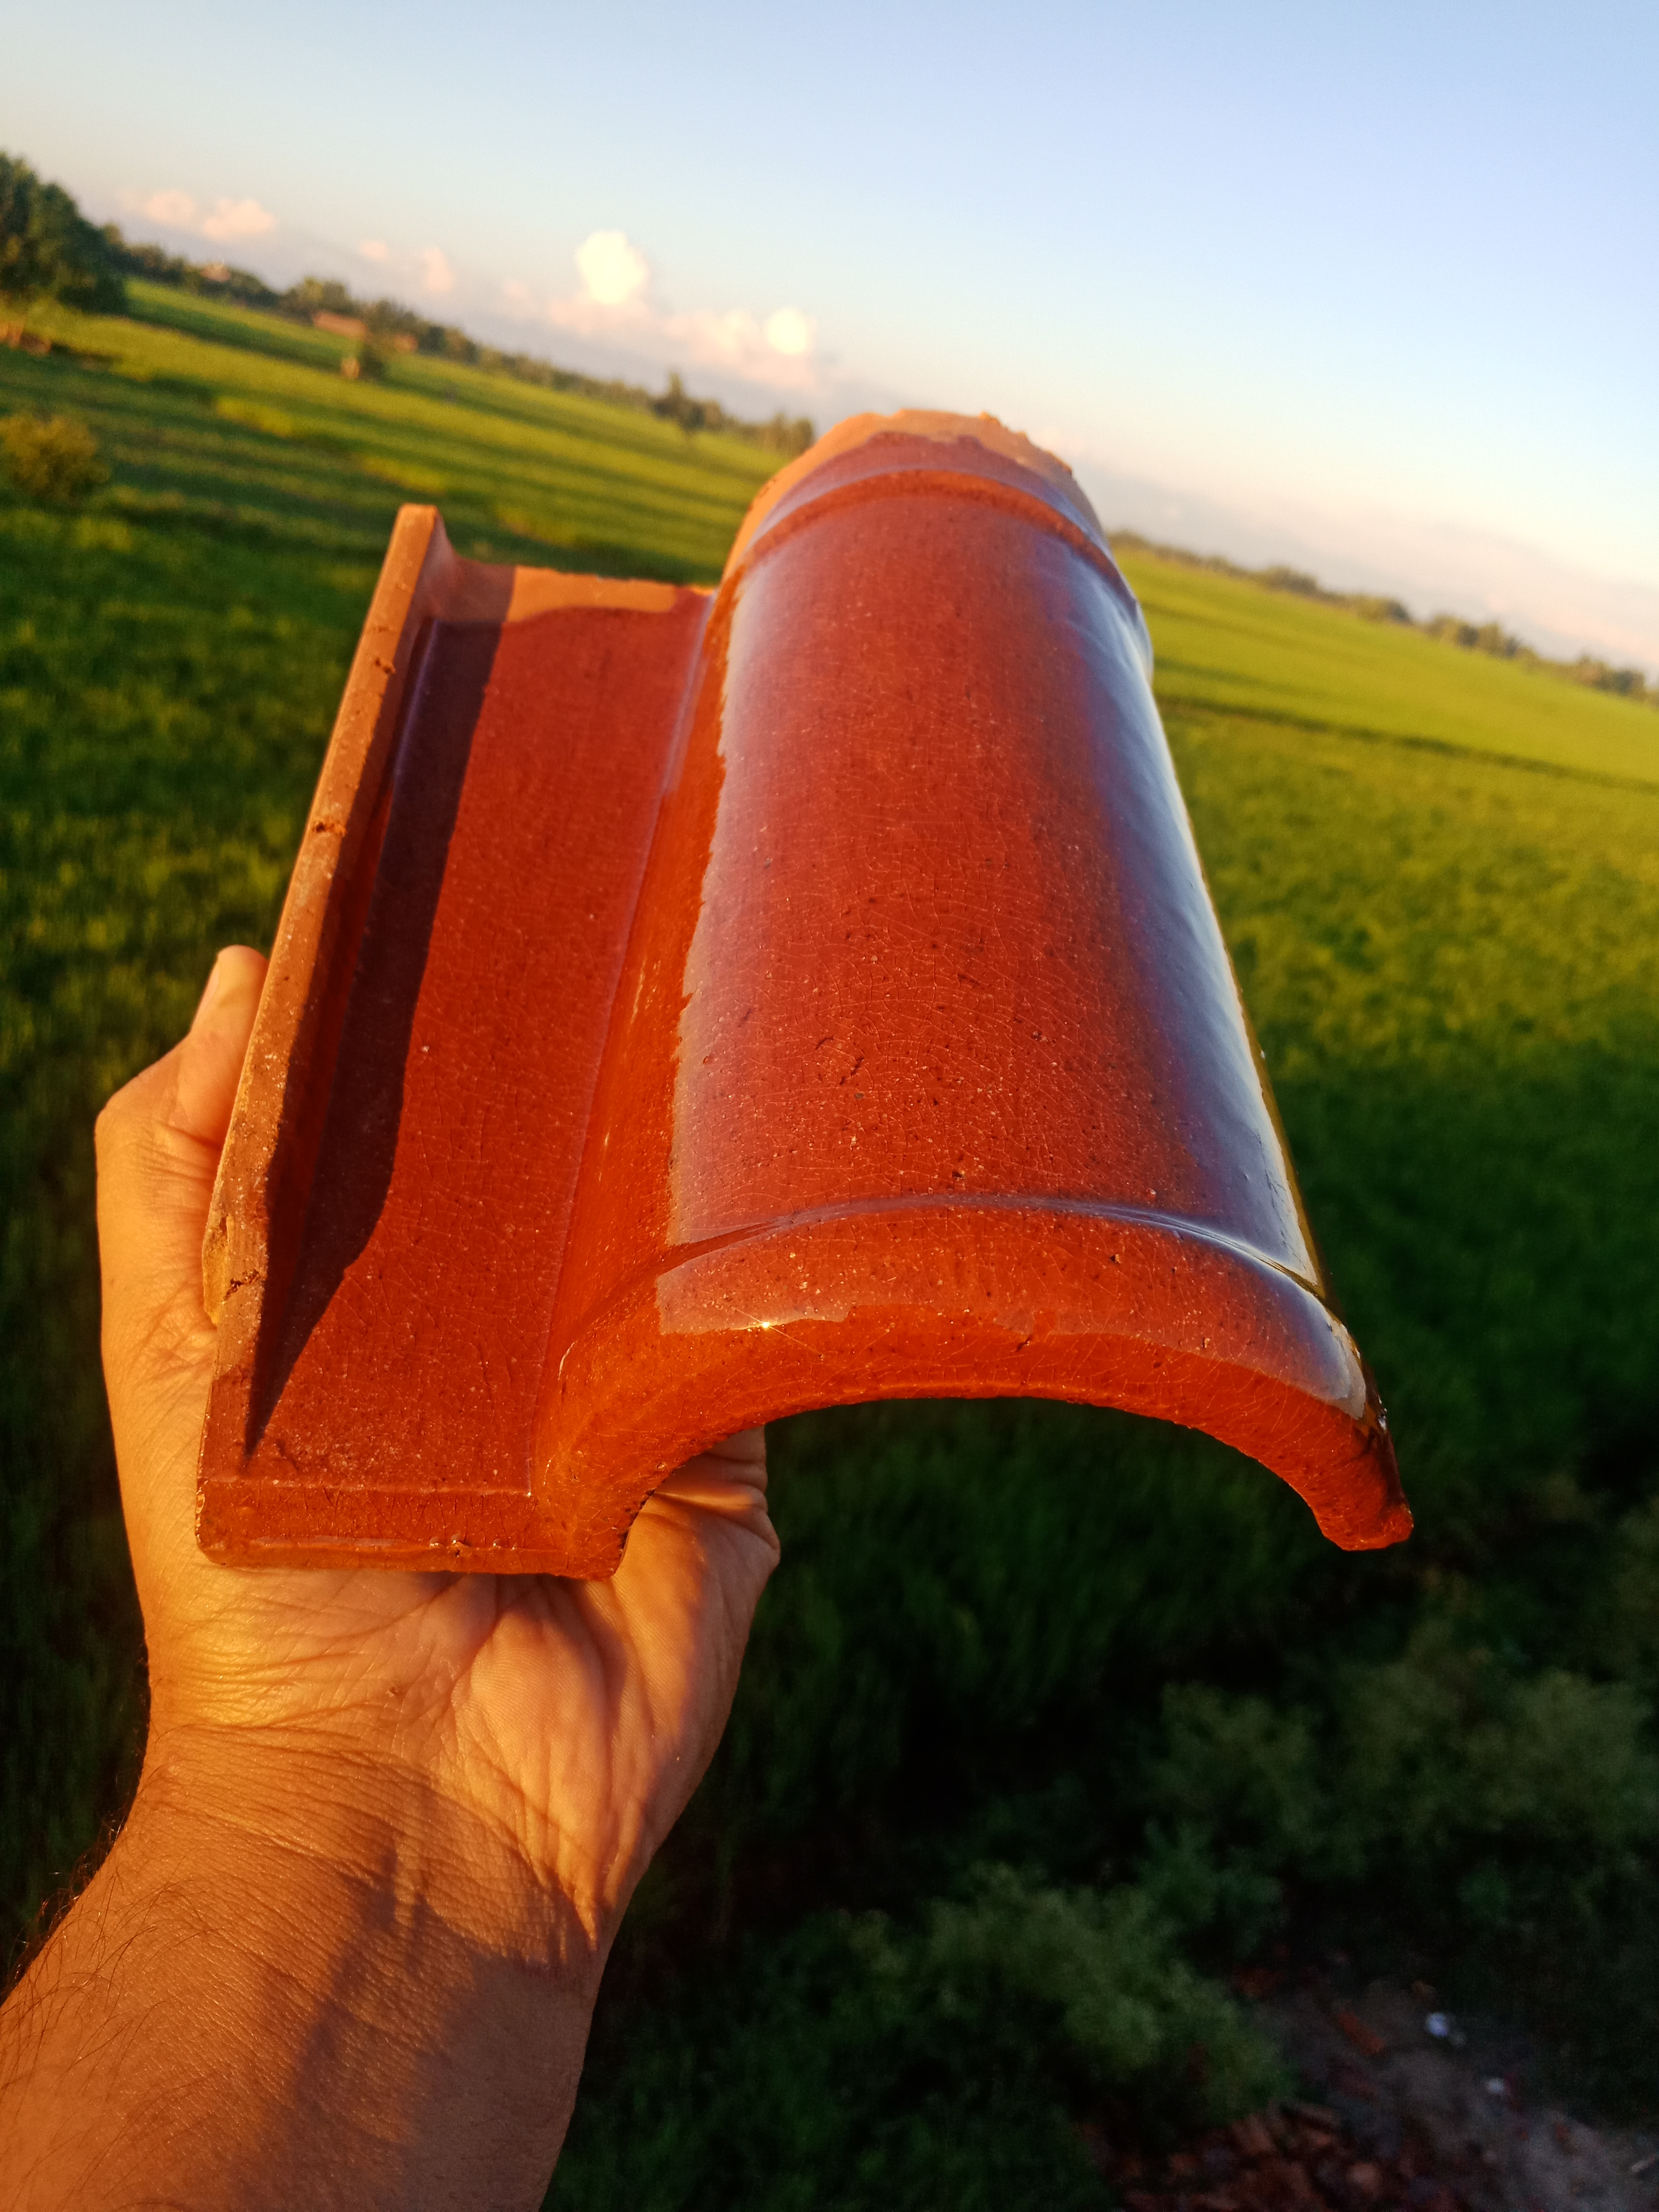 1 Pak Clay Industry Terracotta Tiles Spanish Roof Tiles 9 Roofing Tiles Images.